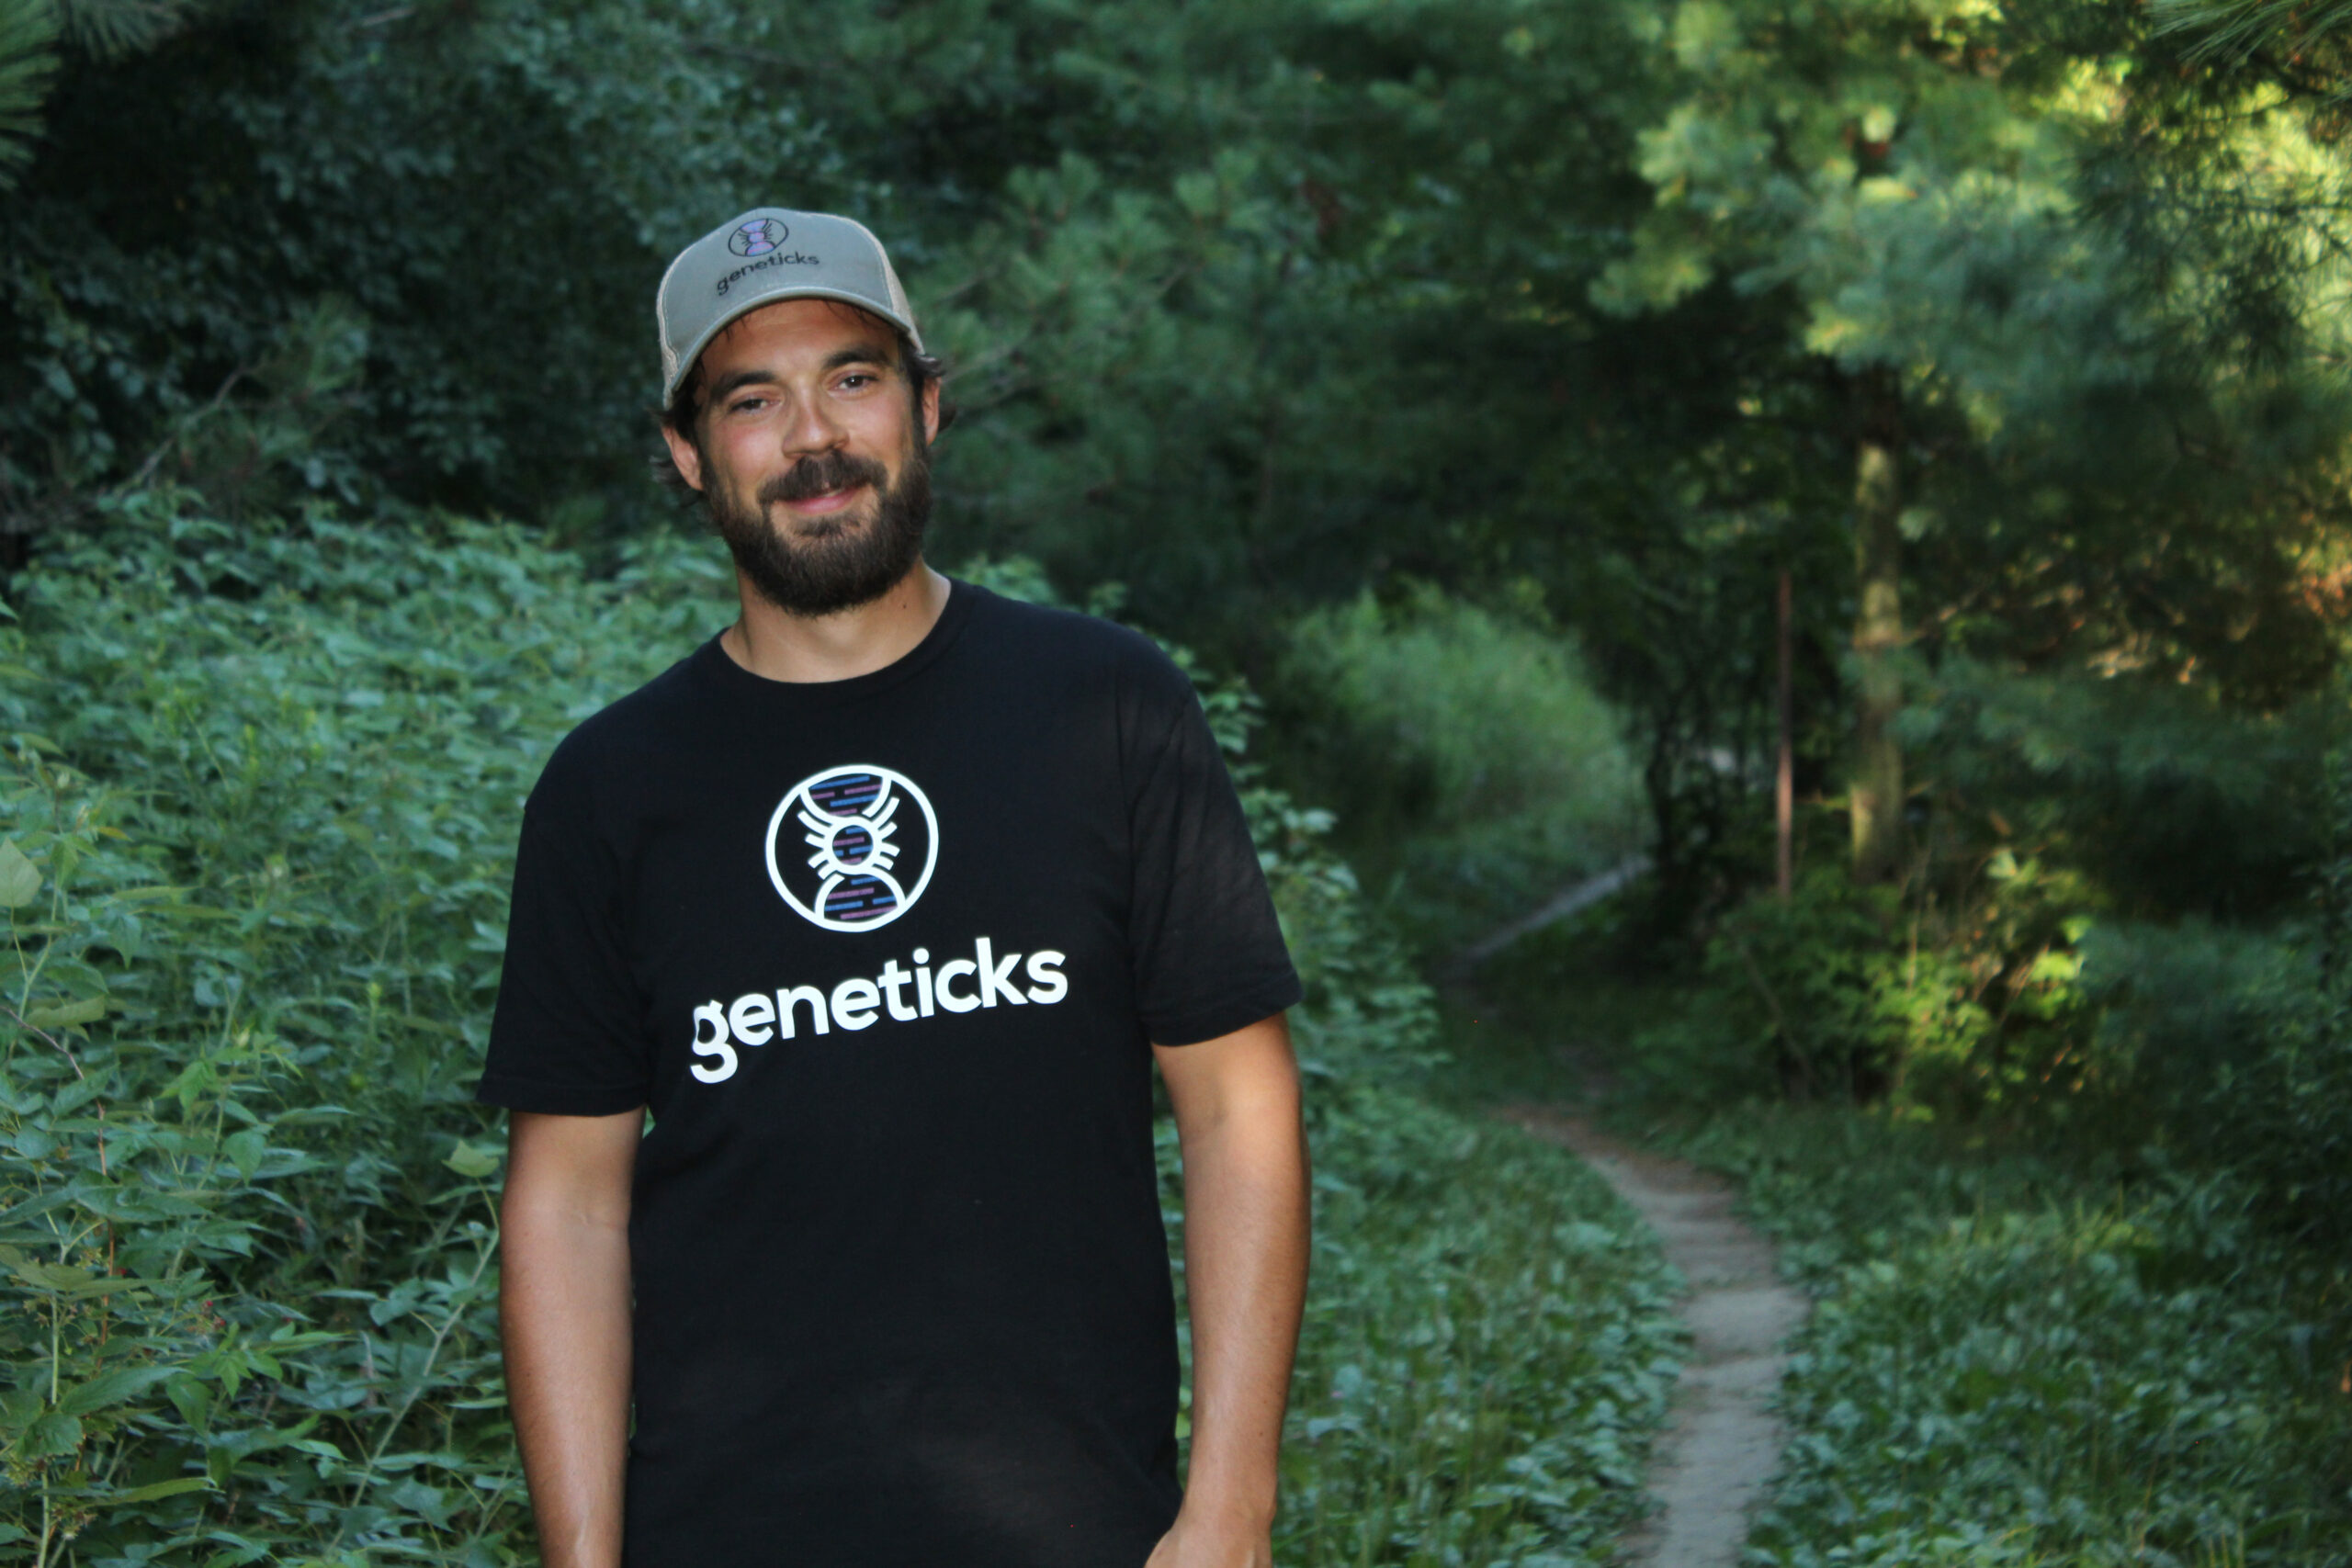 A young white male in a black T shirt that reads geneticks and a greenbaseball hat stands in front of woods